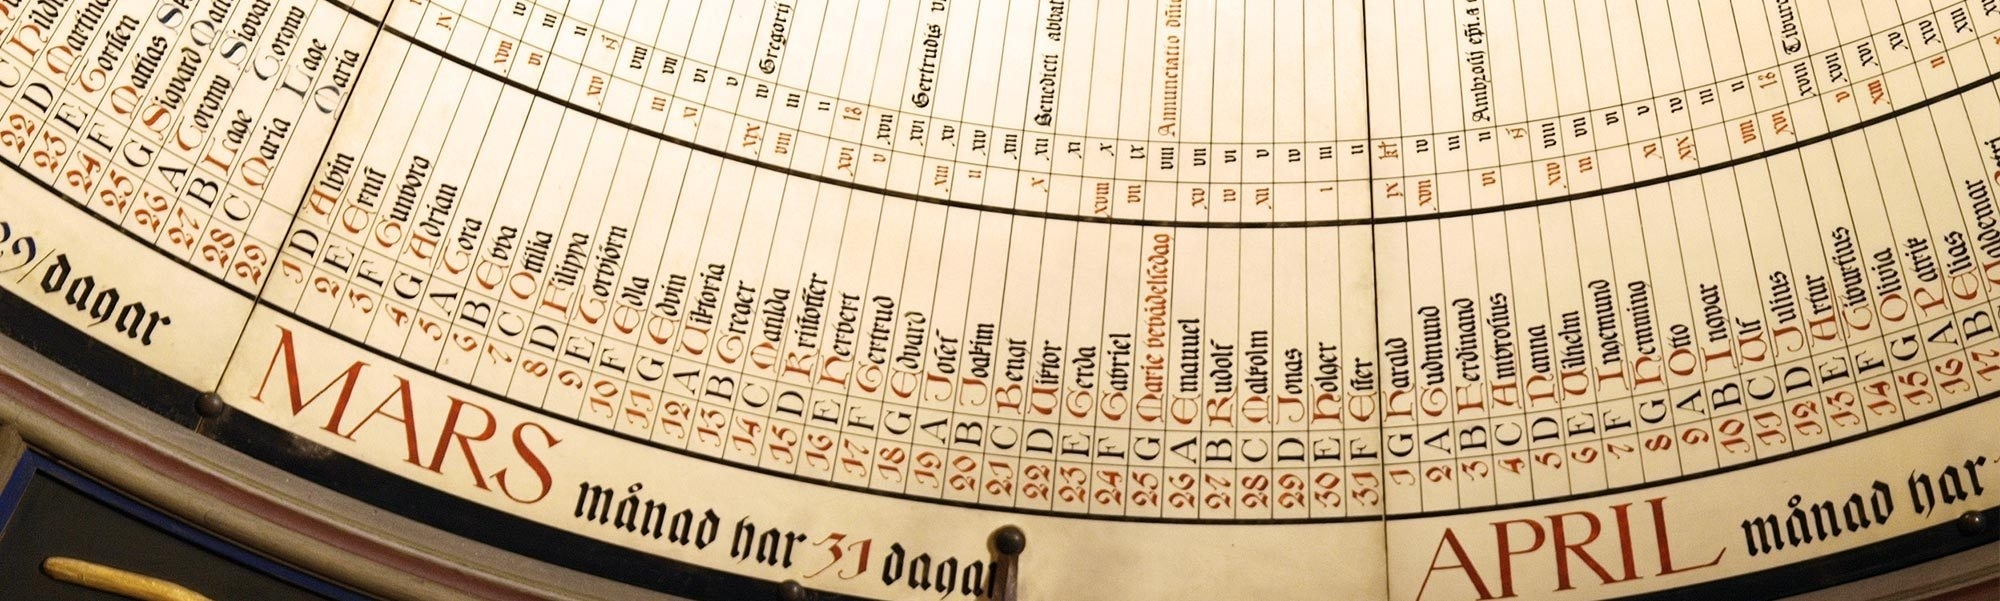 Keeping Track Of Time - Curious pertaining to Early Civilization Calendar Based On Moon Phases